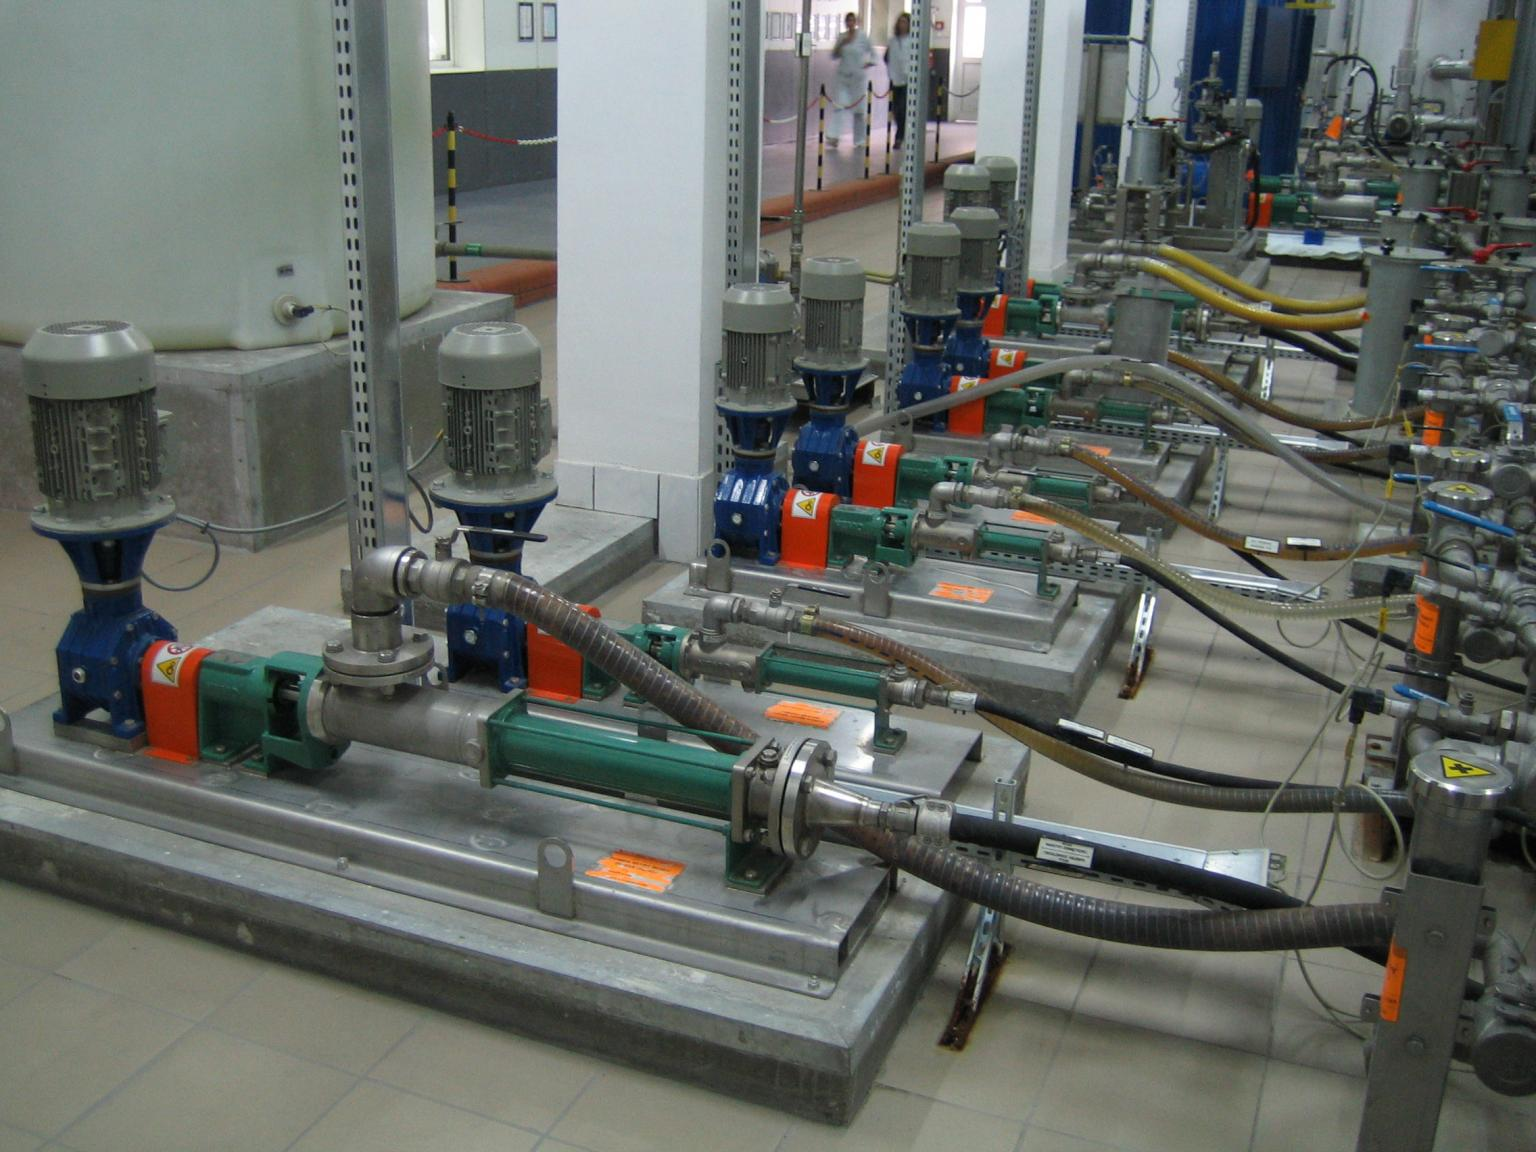 By customising the design and material the pumps can be designed for any application